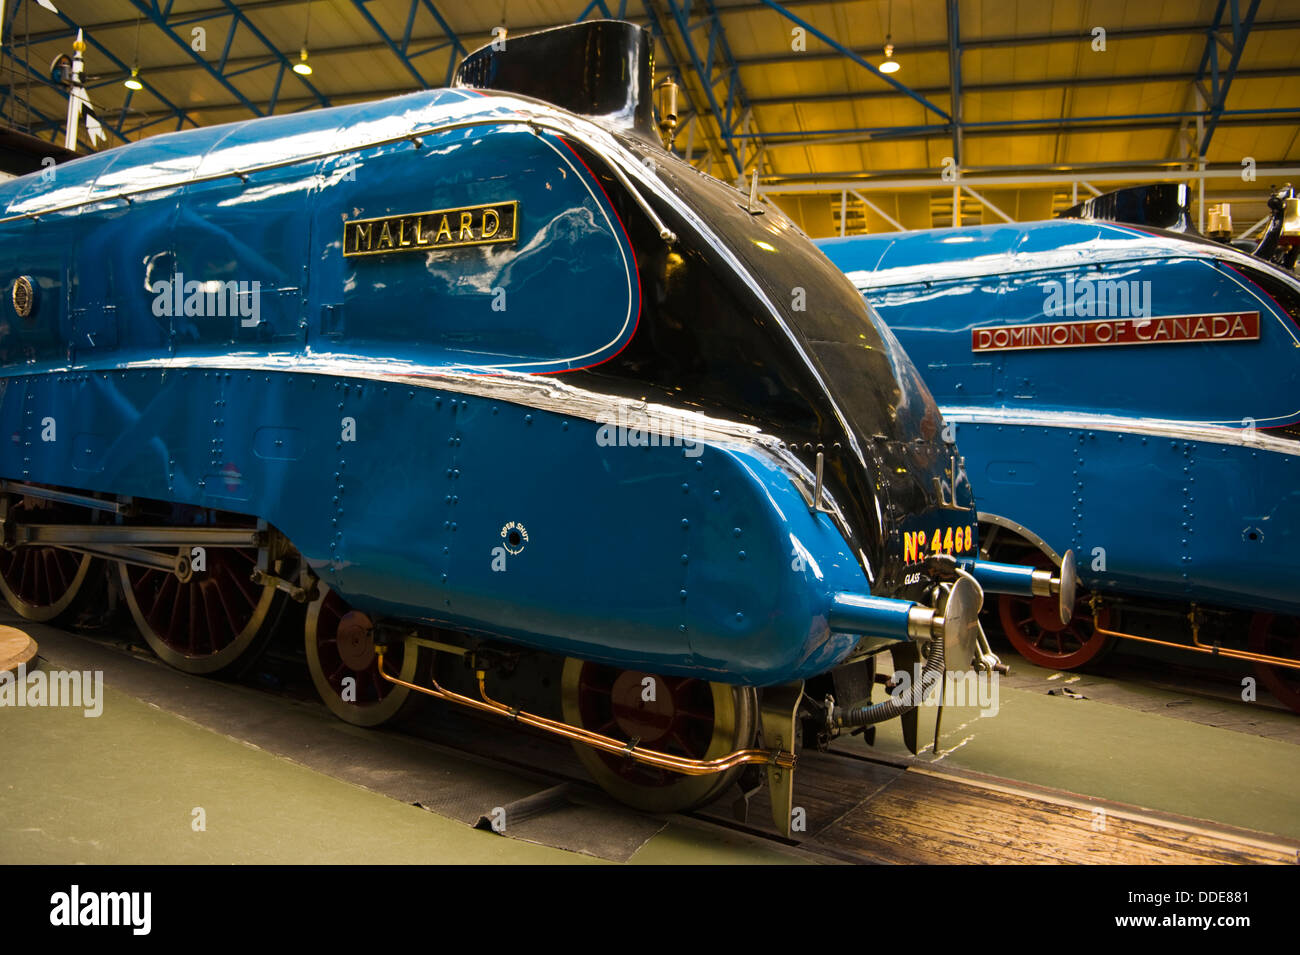 Mallard and Dominion of Canada steam trains on display at National Railway Museum in the city of York North Yorkshire - Stock Image